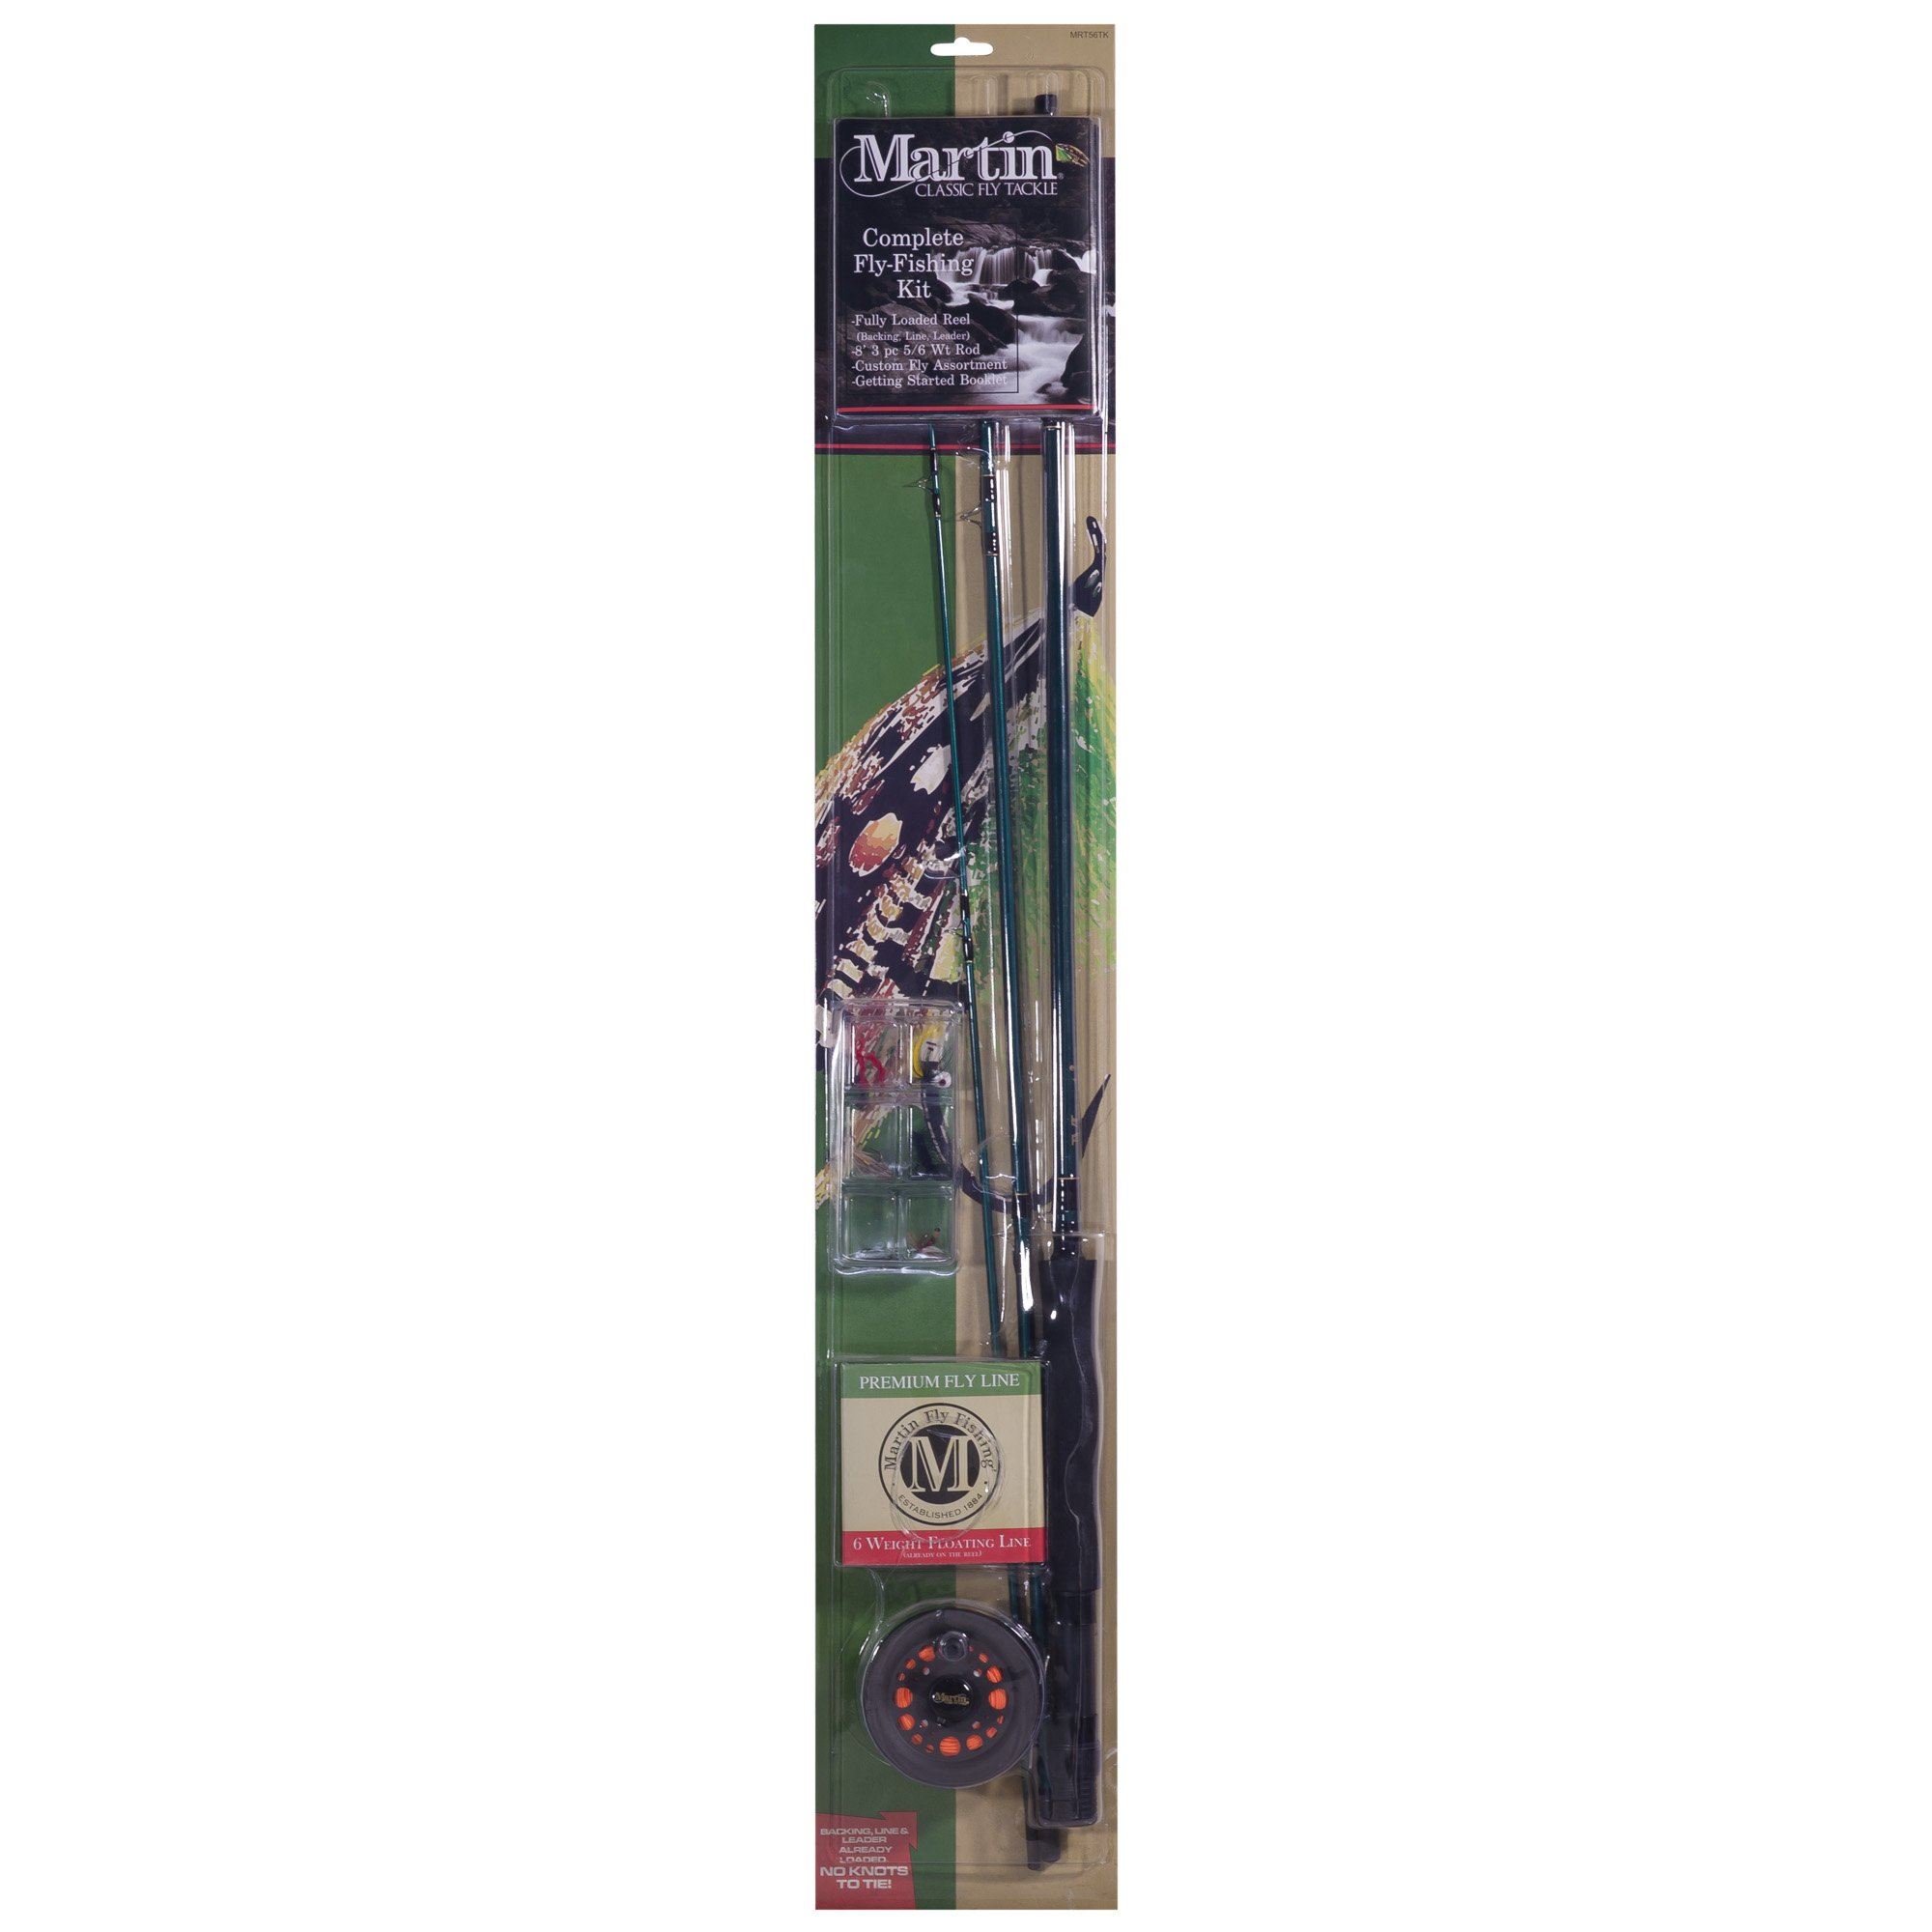 Martin Fly Fishing Martin Fly Complete Fly Fishing Kit 6 Lb